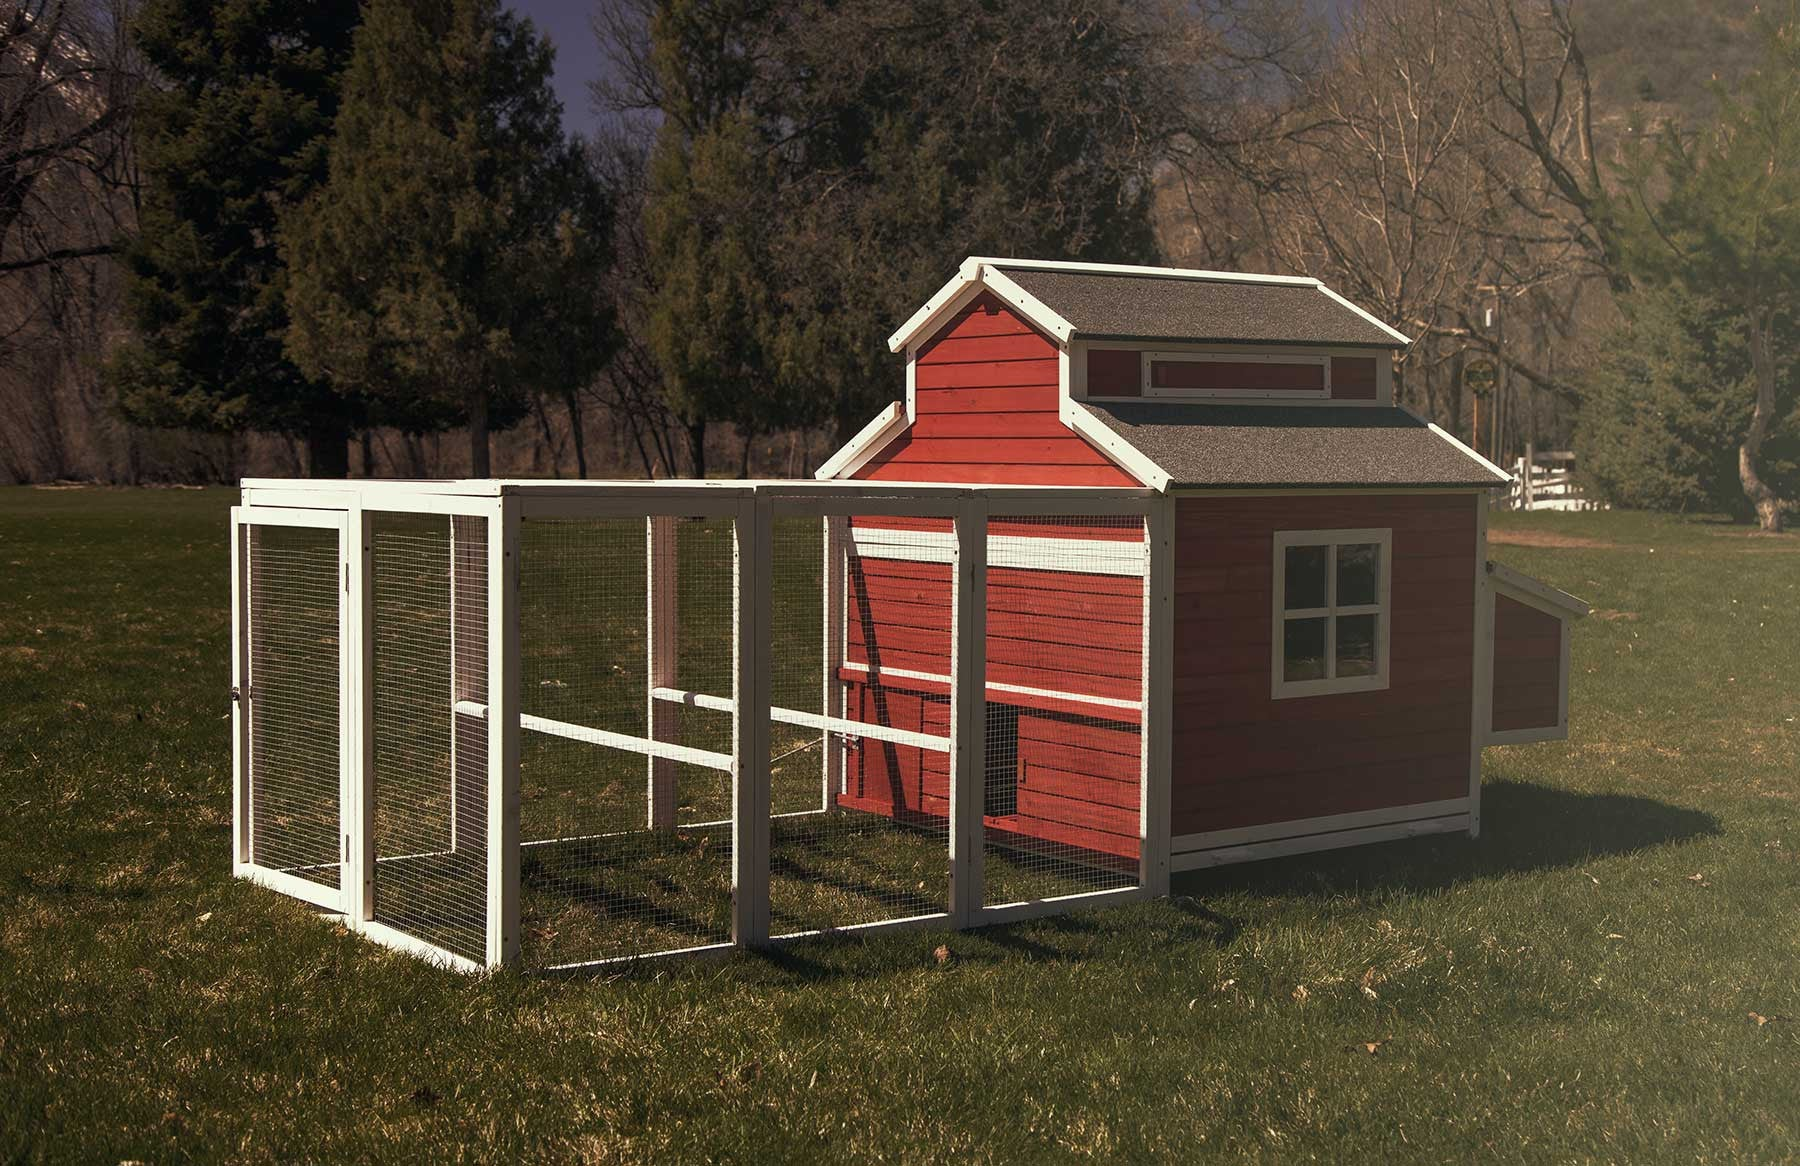 Another side of the Schoolhouse chicken coop, revealing a four-paned window and the traditional red and white schoolhouse paint